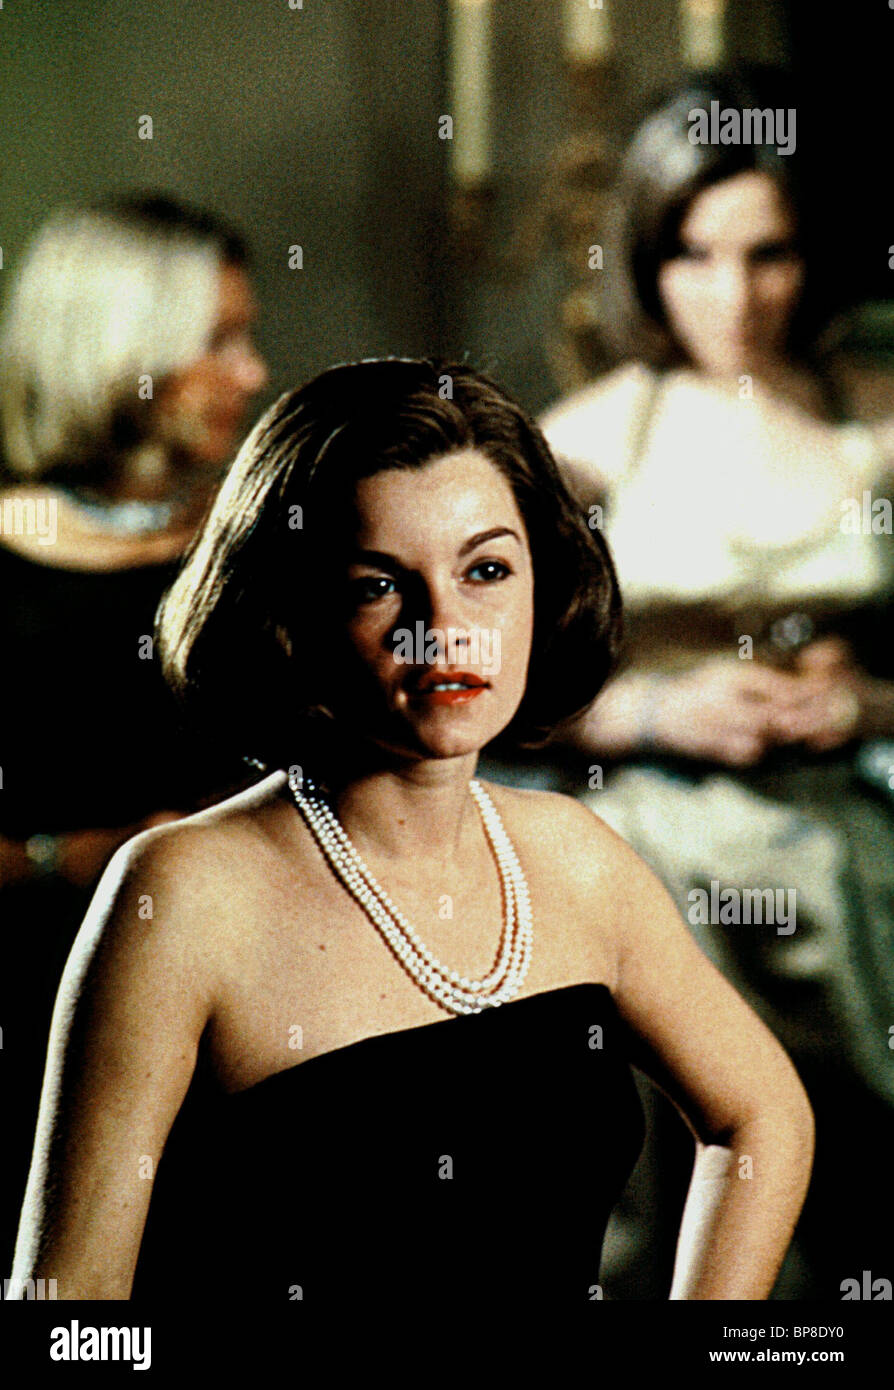 GENEVIEVE BUJOLD OBSESSION (1976) - Stock Image